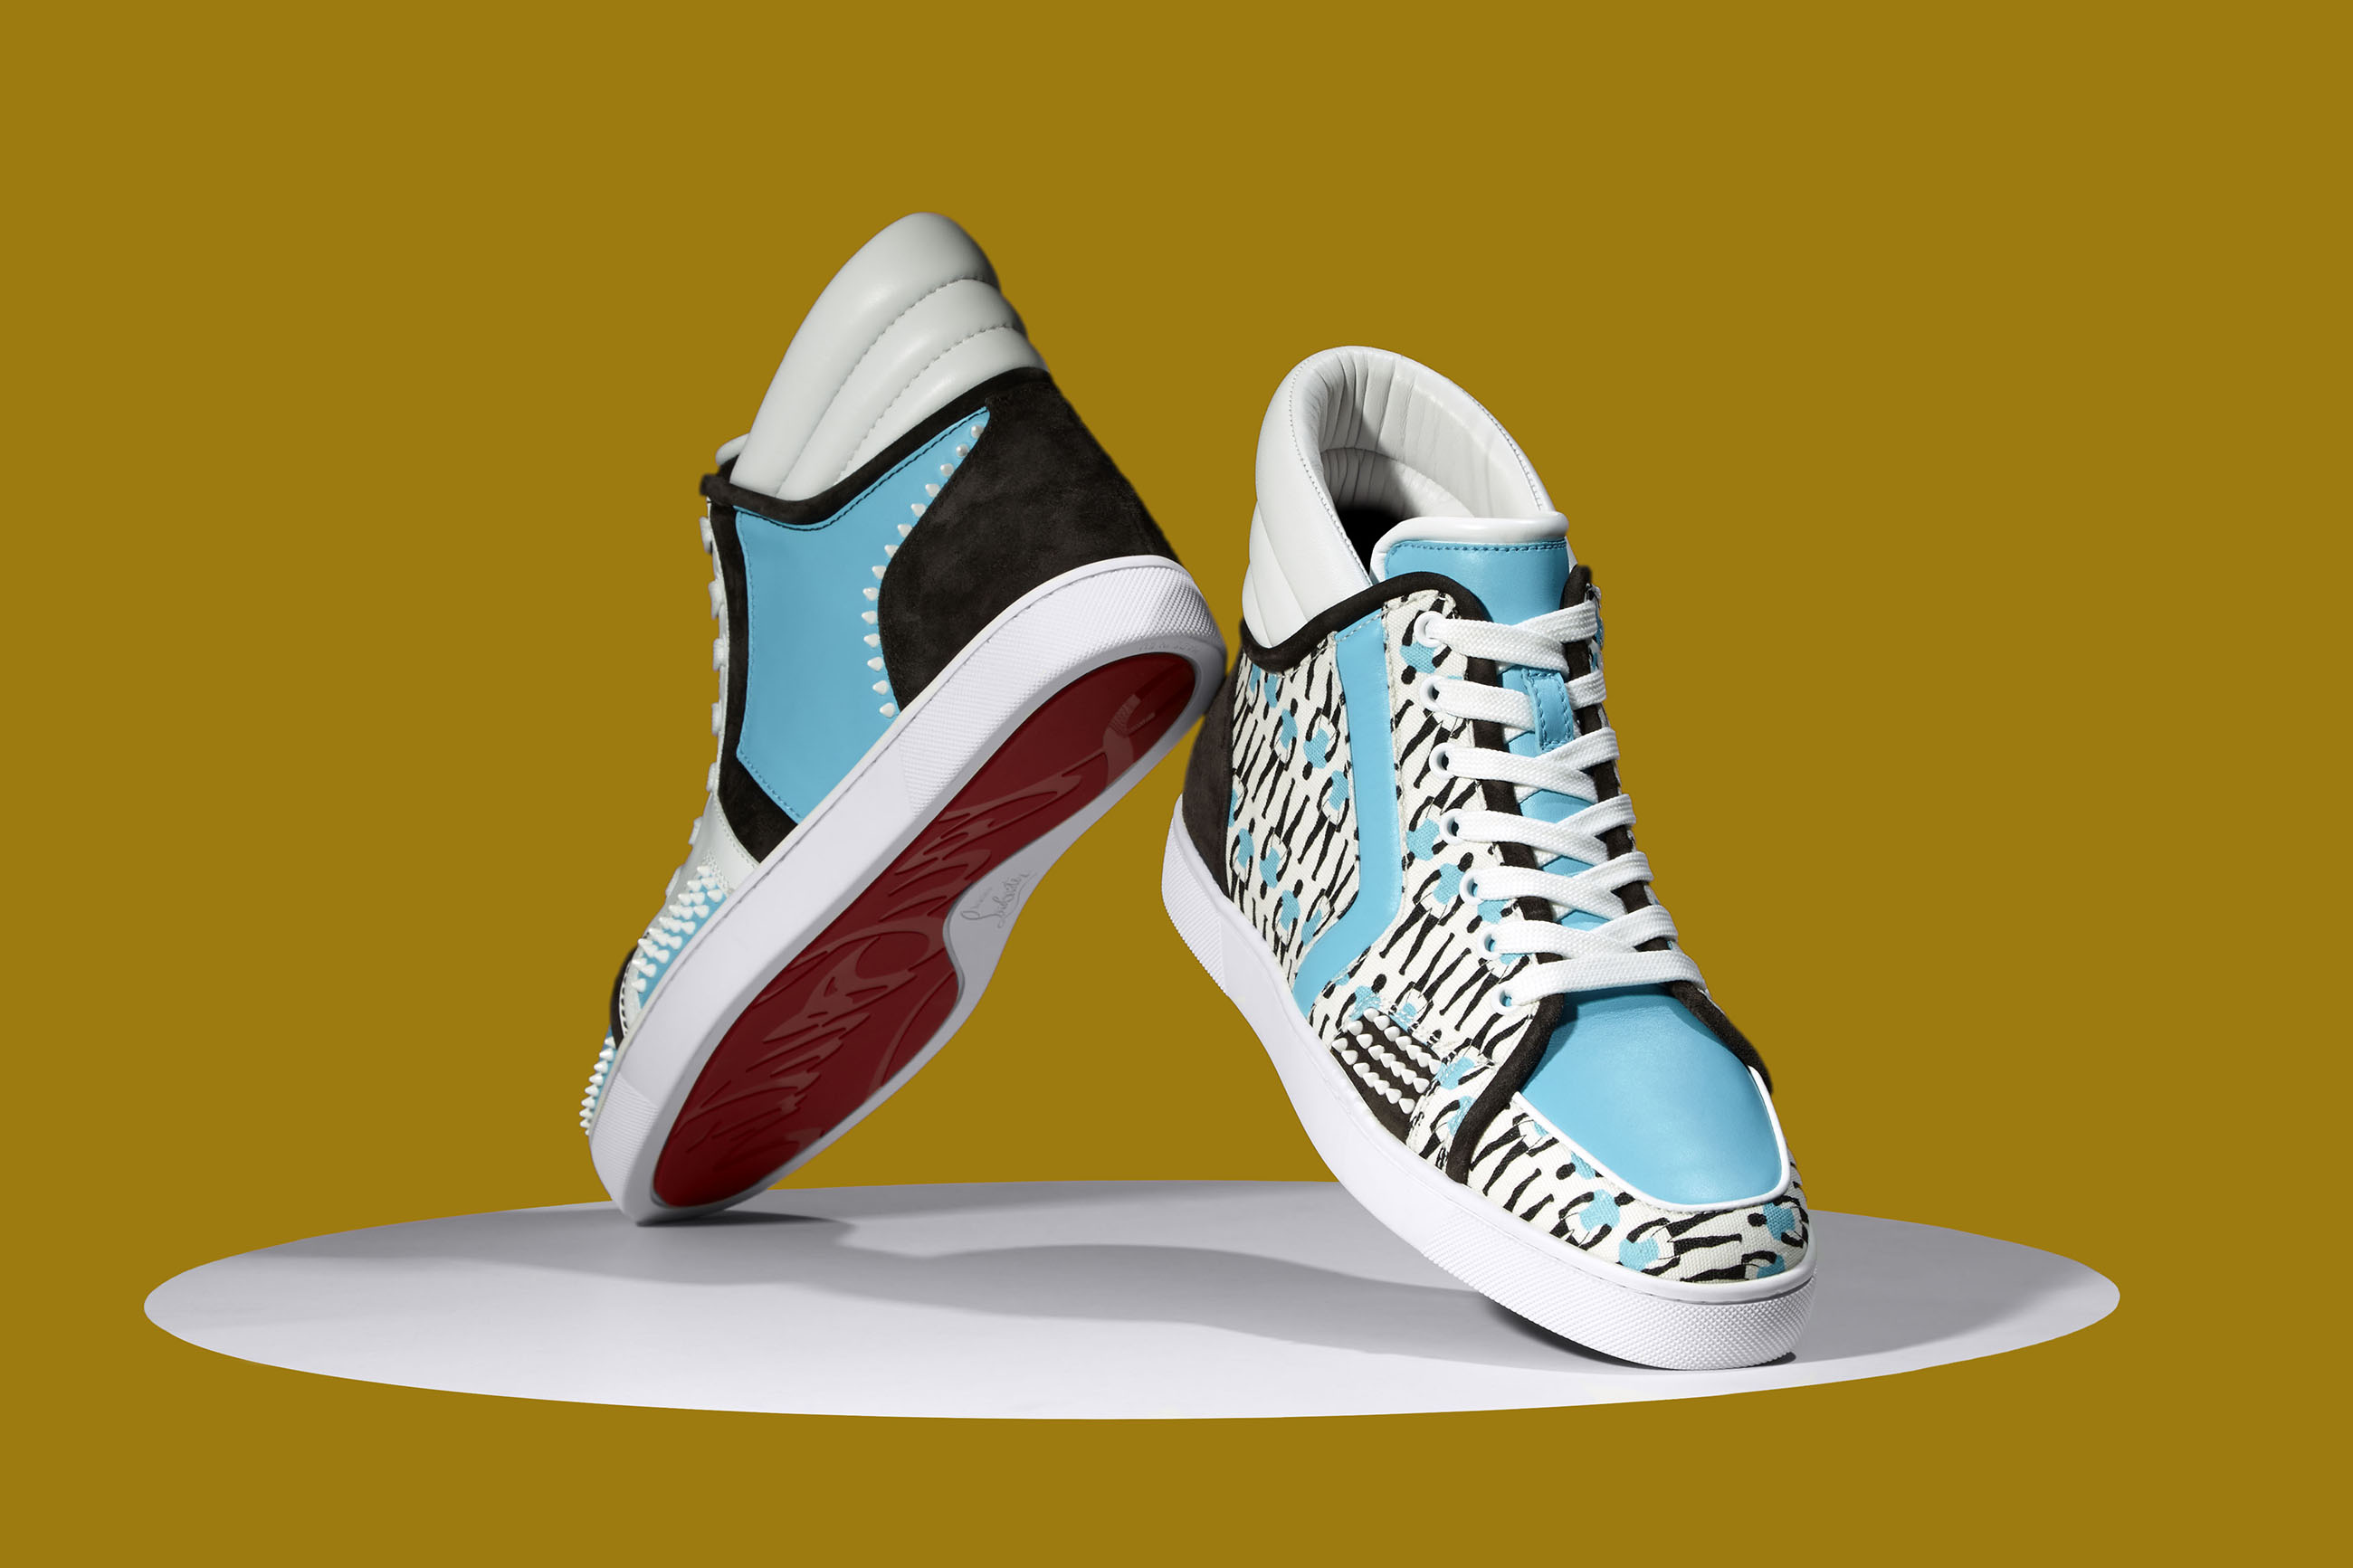 9cd42444c3b7 Christian Louboutin Launches Sneaker Capsule Collection for Sporty Henri